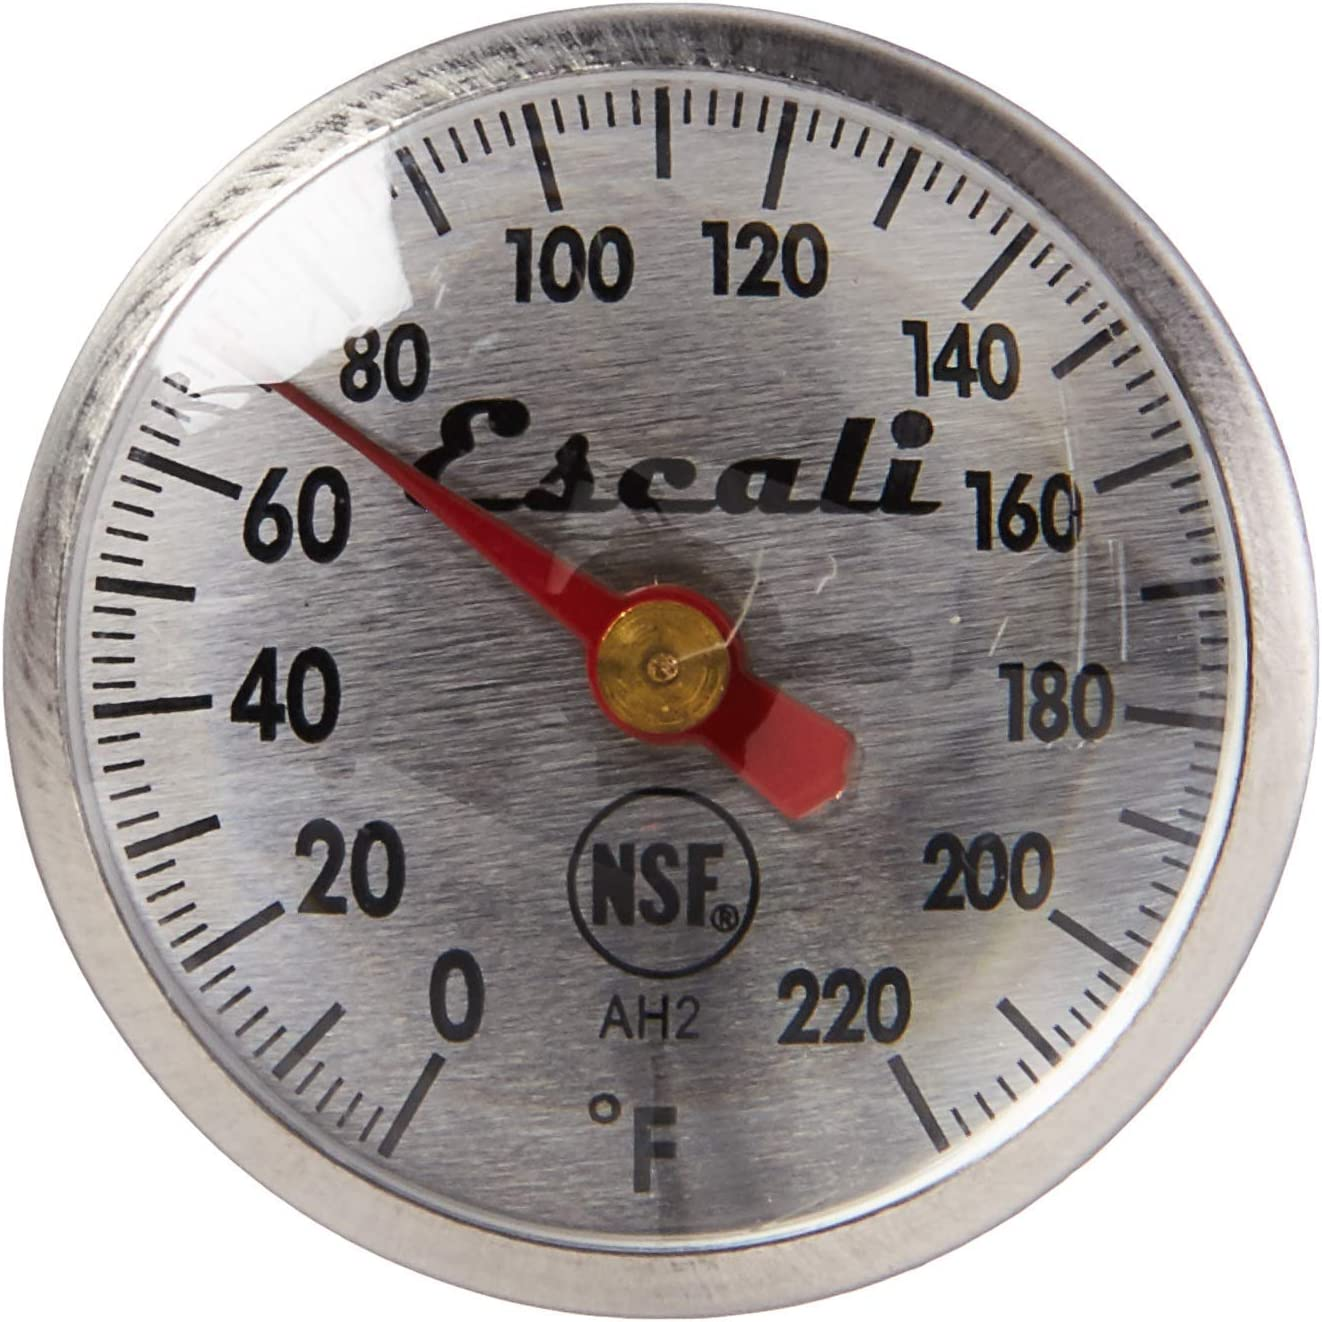 Escali AH2 NSF Certified Commercial Instant Read Small Dial Thermometer, Antimicrobial Protective Sheath, Silver